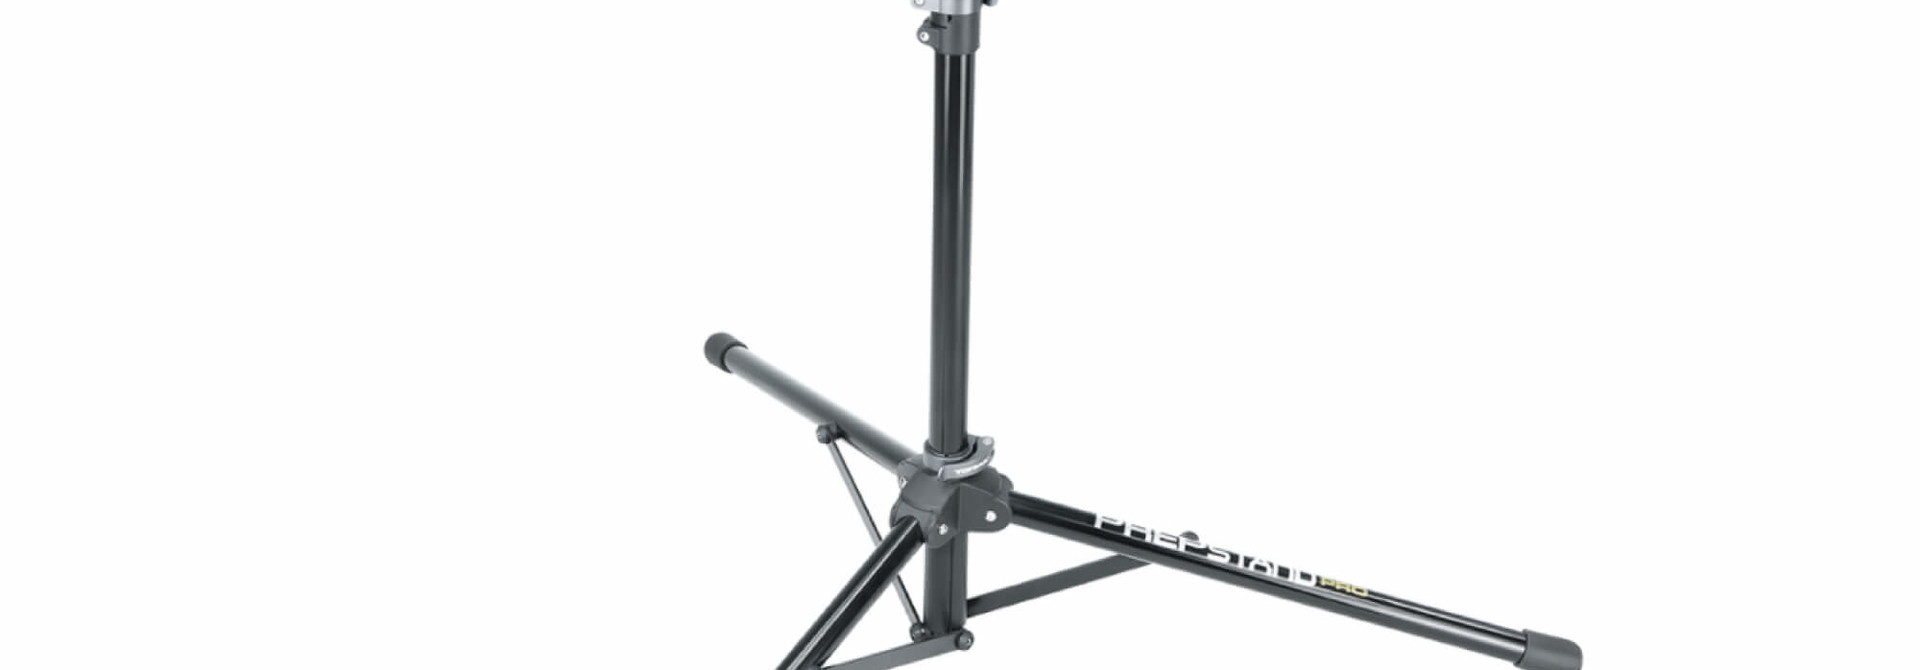 Prepstand Pro With Weight Scale